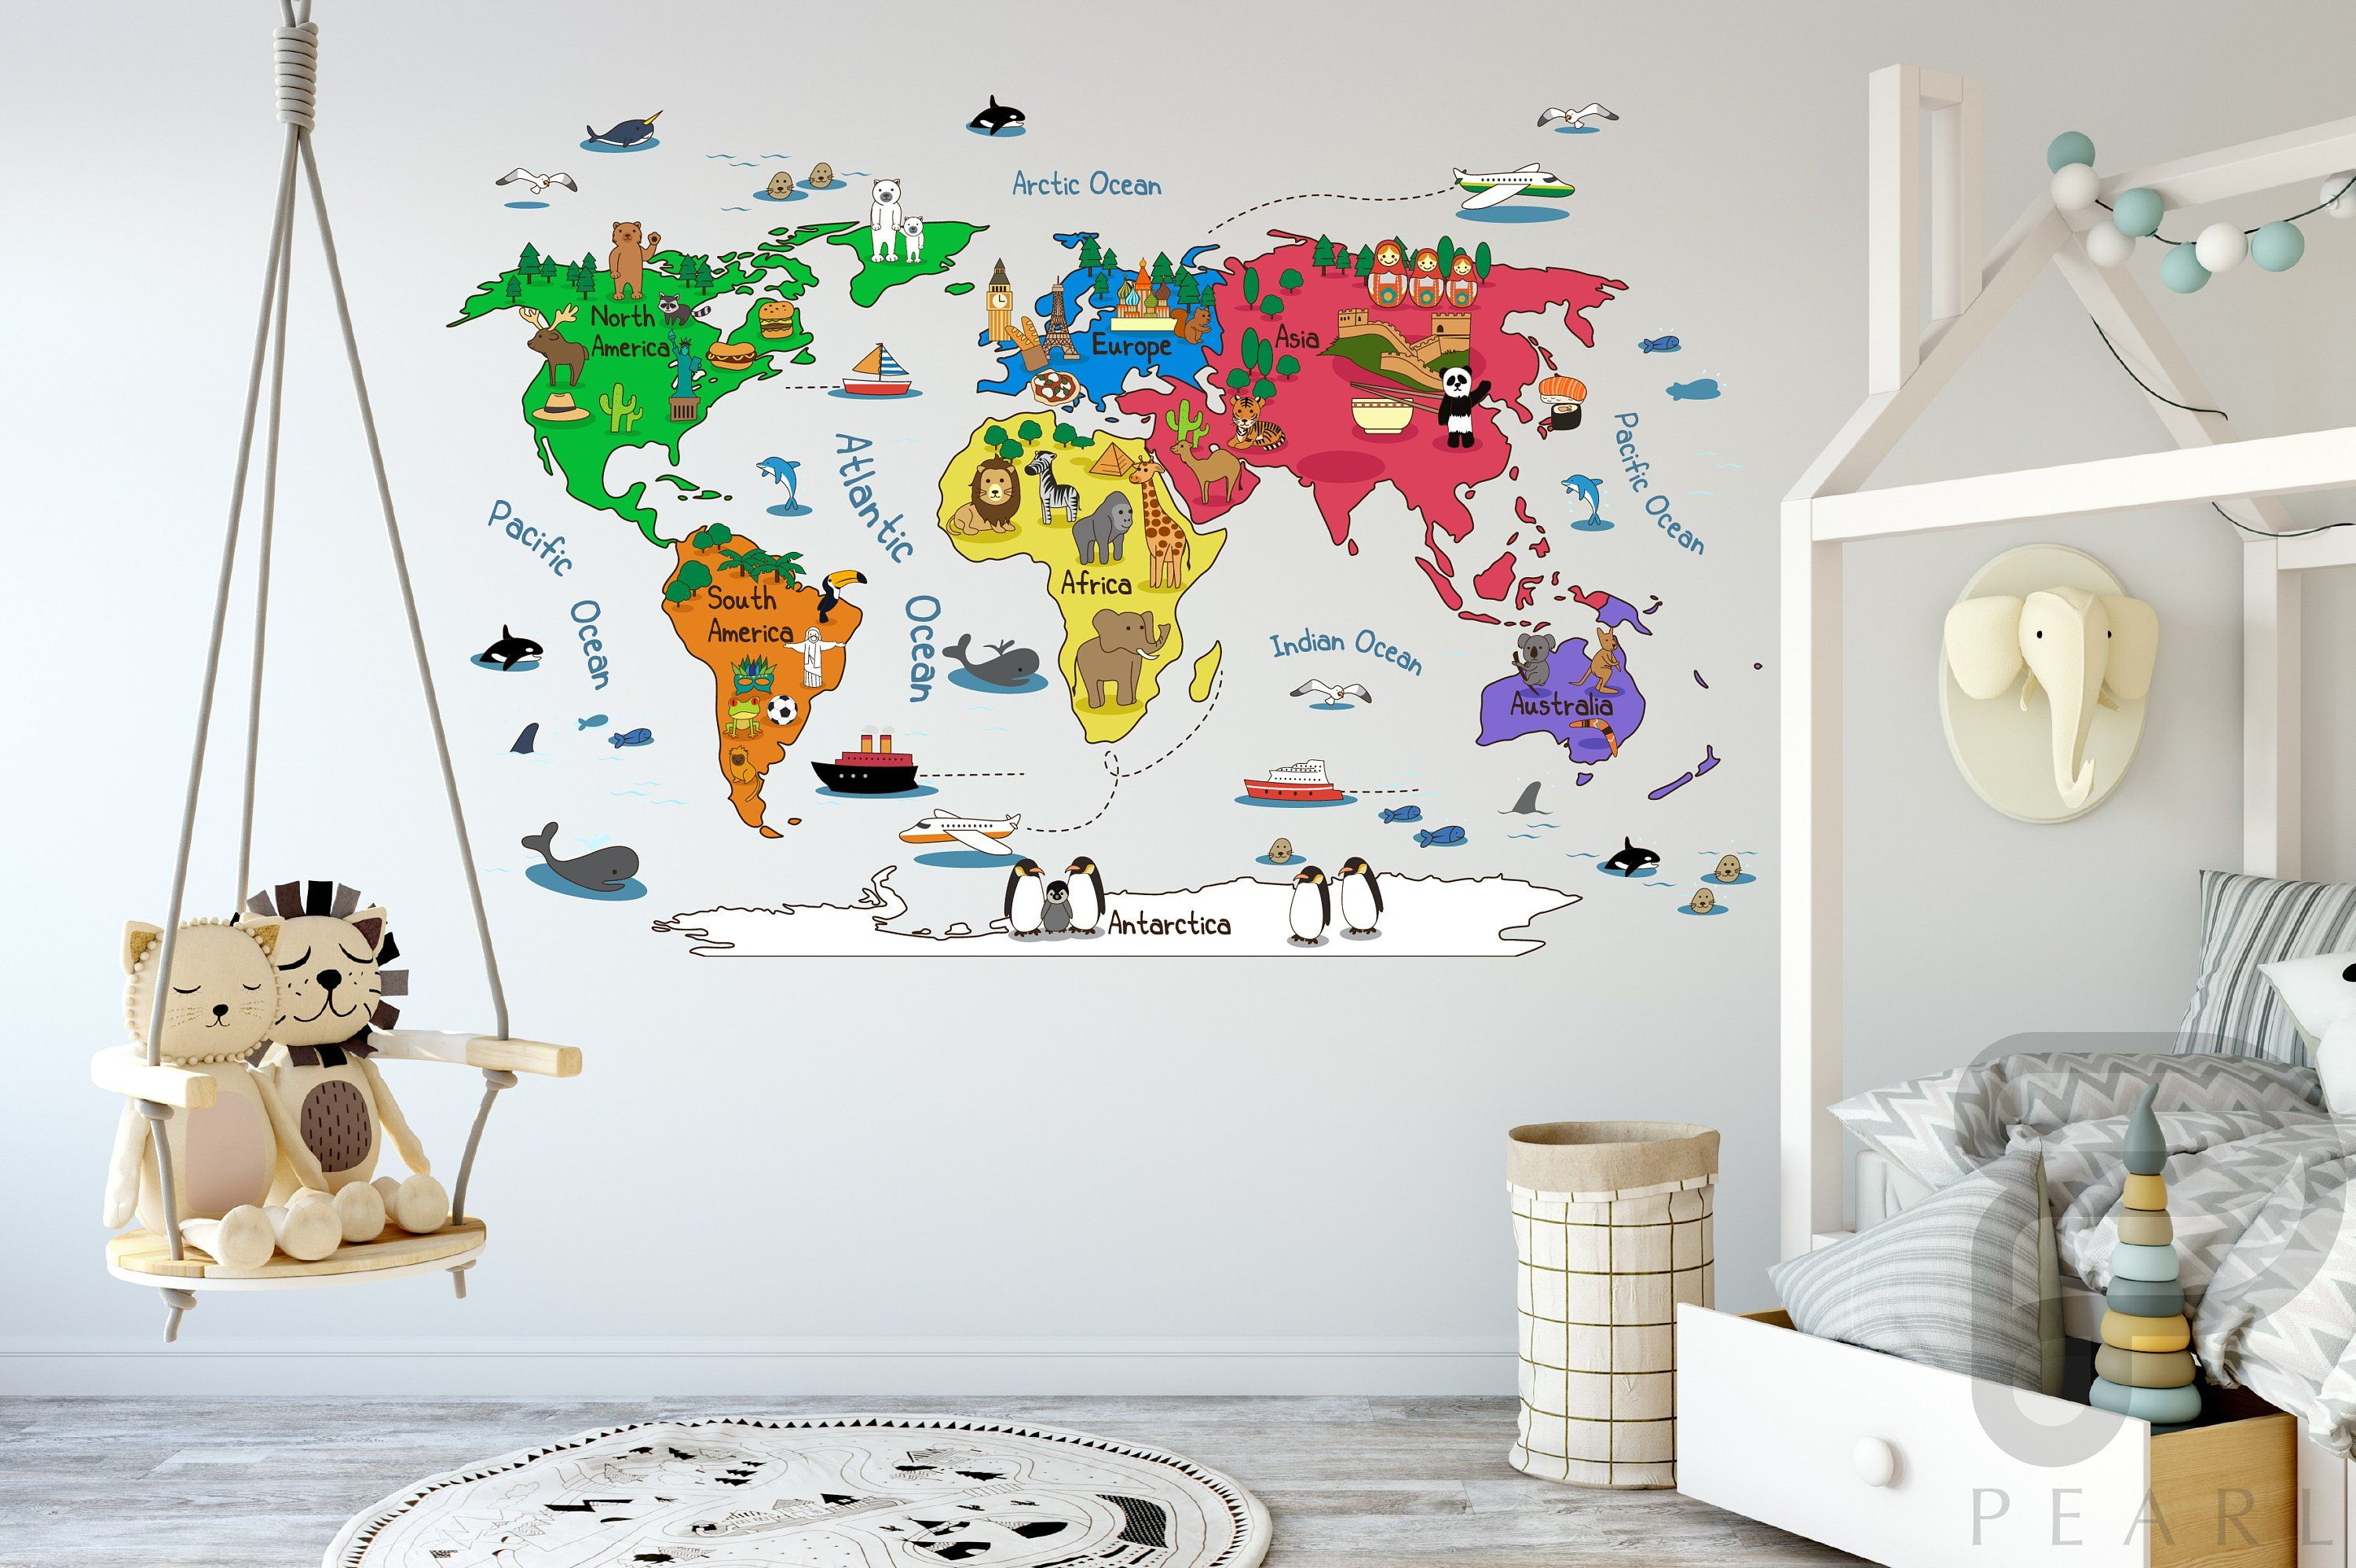 Wall Map Decal / Kids World Map / l and Stick in 2019 | Wall ... Kids Wall Maps on palace map, statue map, desk map, plant map, go to the map, green map, inverted map, plate map, atlas map, trench map, floor map, border map, step map, world map, englewood map, home map, large map, glass map, glider map, magnetic map,